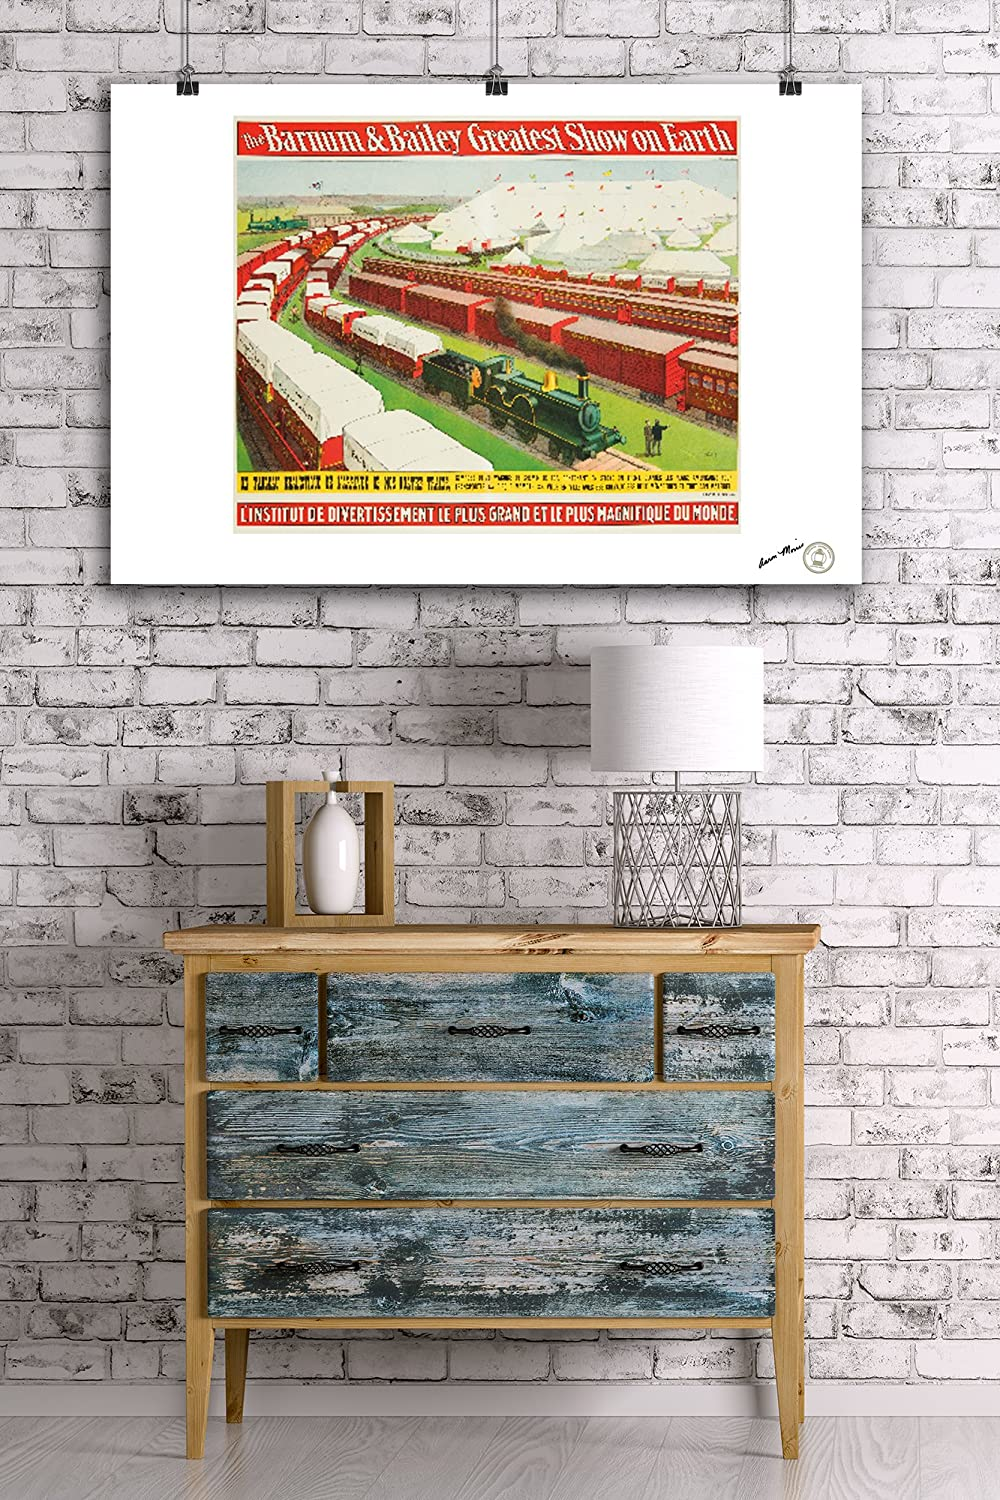 1902 24x36 Giclee Gallery Print, Wall Decor Travel Poster Un Tableau Realistique Vintage Poster USA c Barnum and Bailey